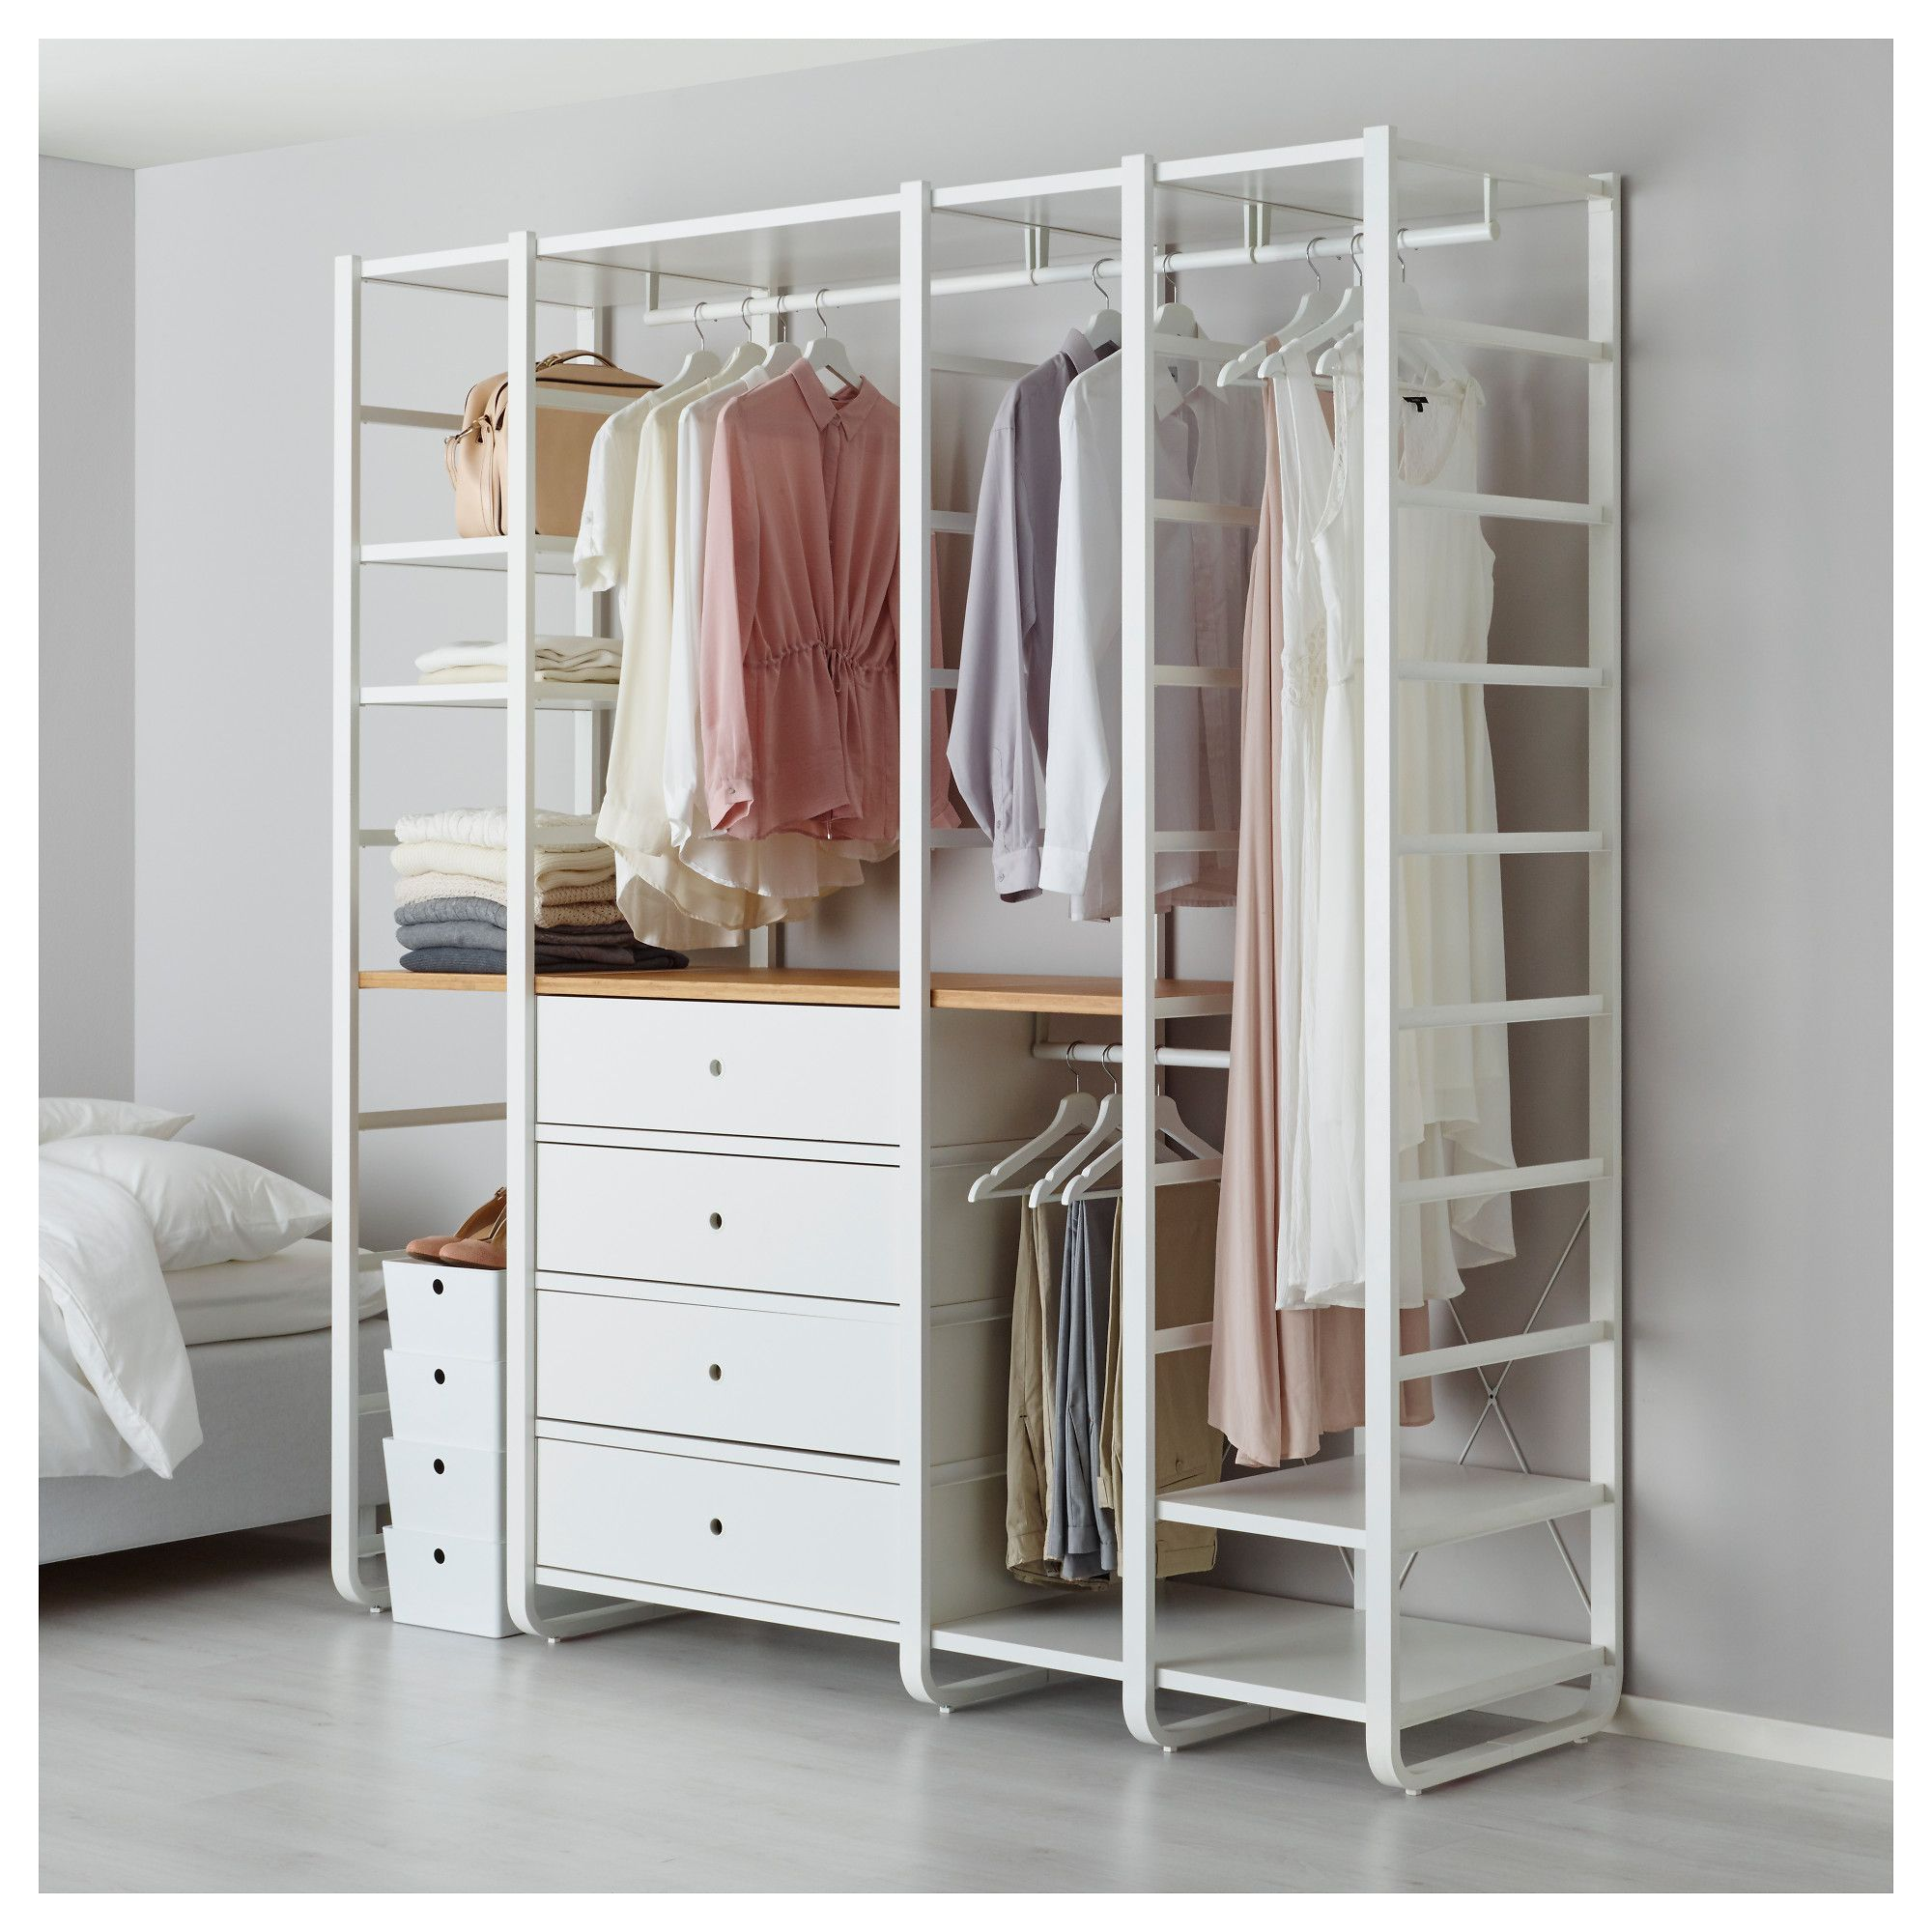 Home Furnishings, Kitchens, Appliances, Sofas, Beds, Mattresses   IKEA. Open  WardrobeWardrobe ...